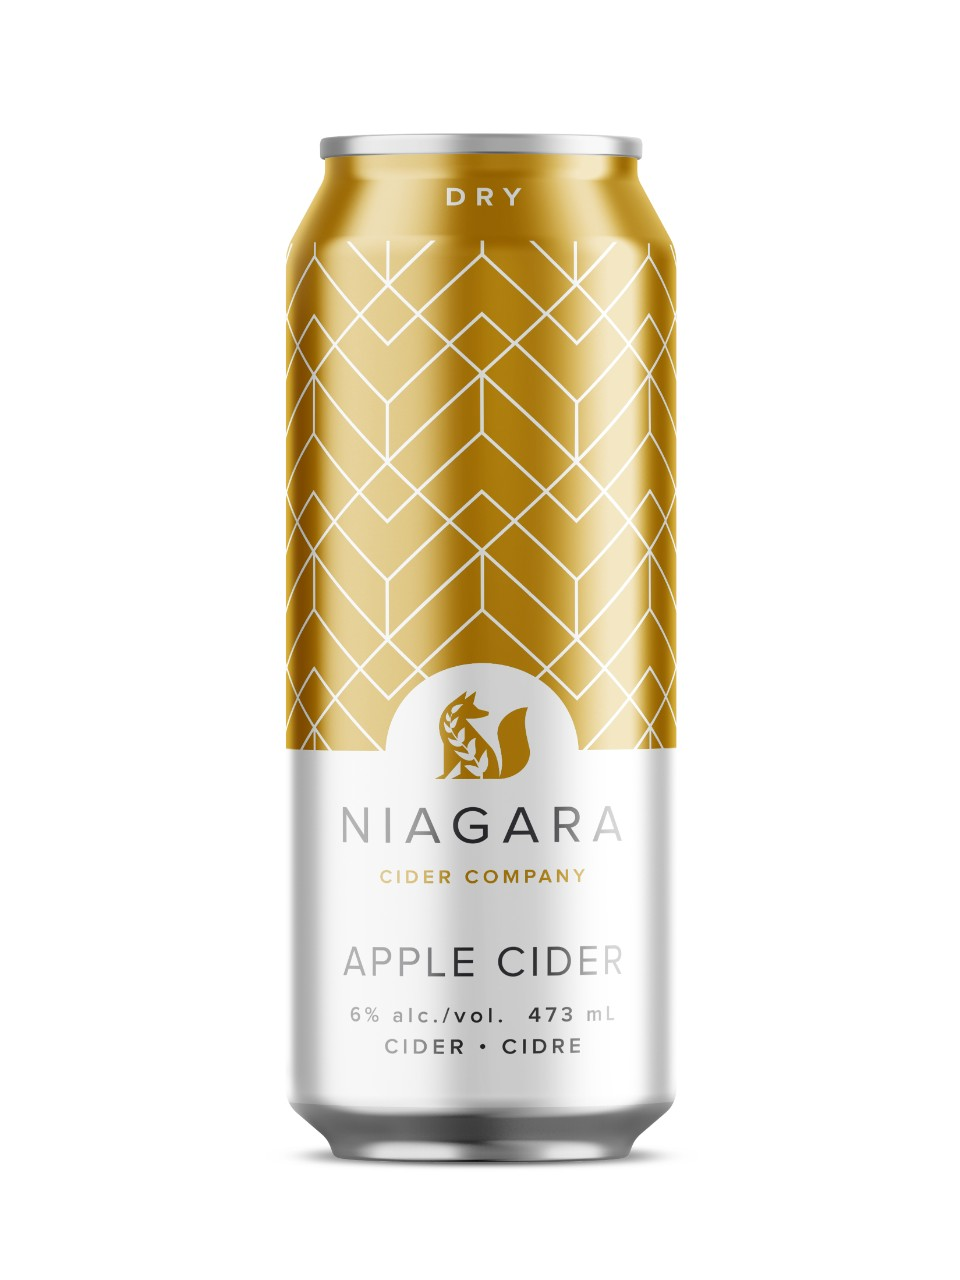 Niagara Cider Company No.1 Dry Apple Cider from LCBO